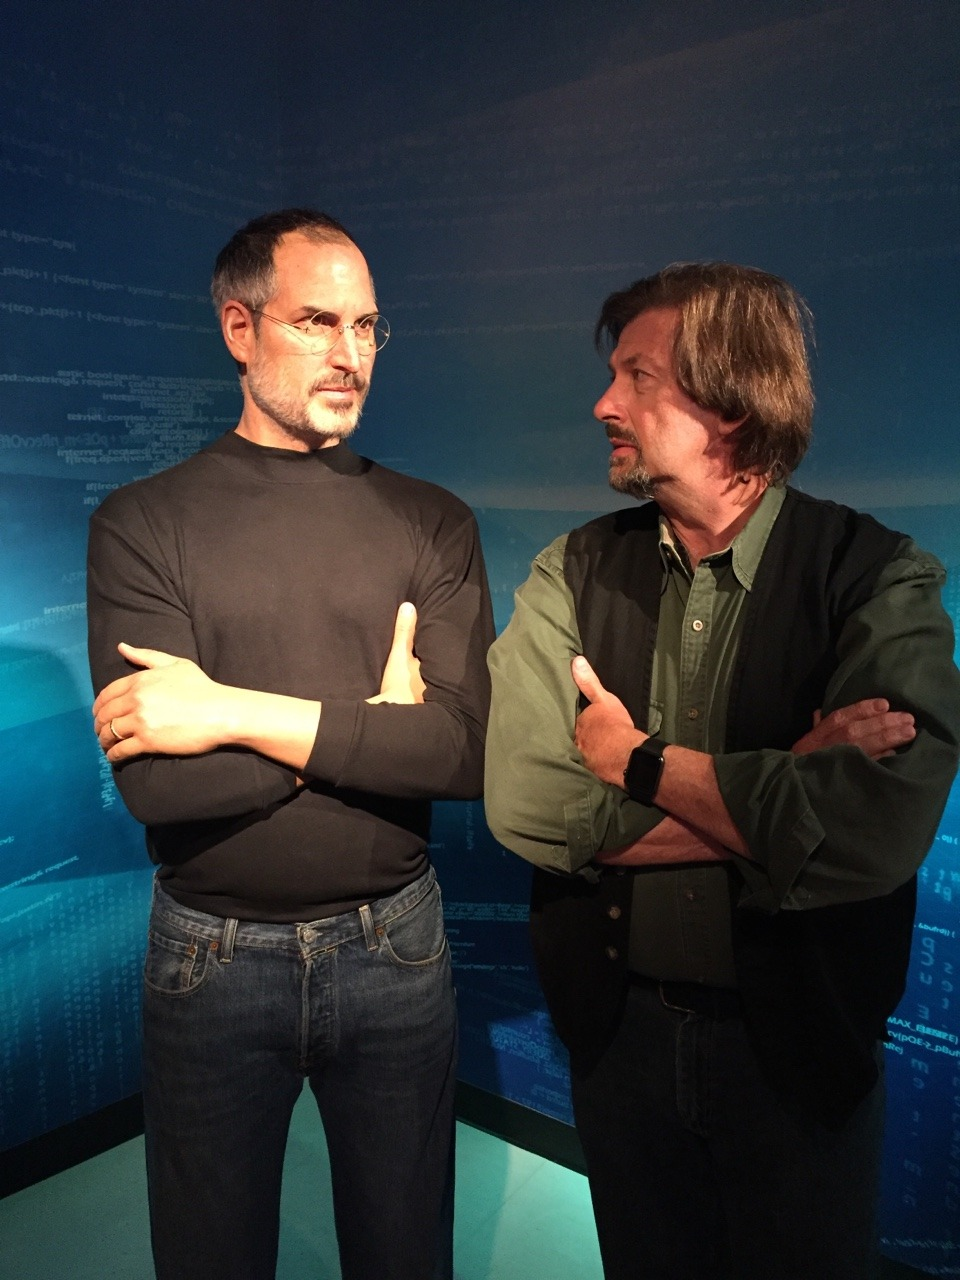 Steve Jobs and Bill.jpg